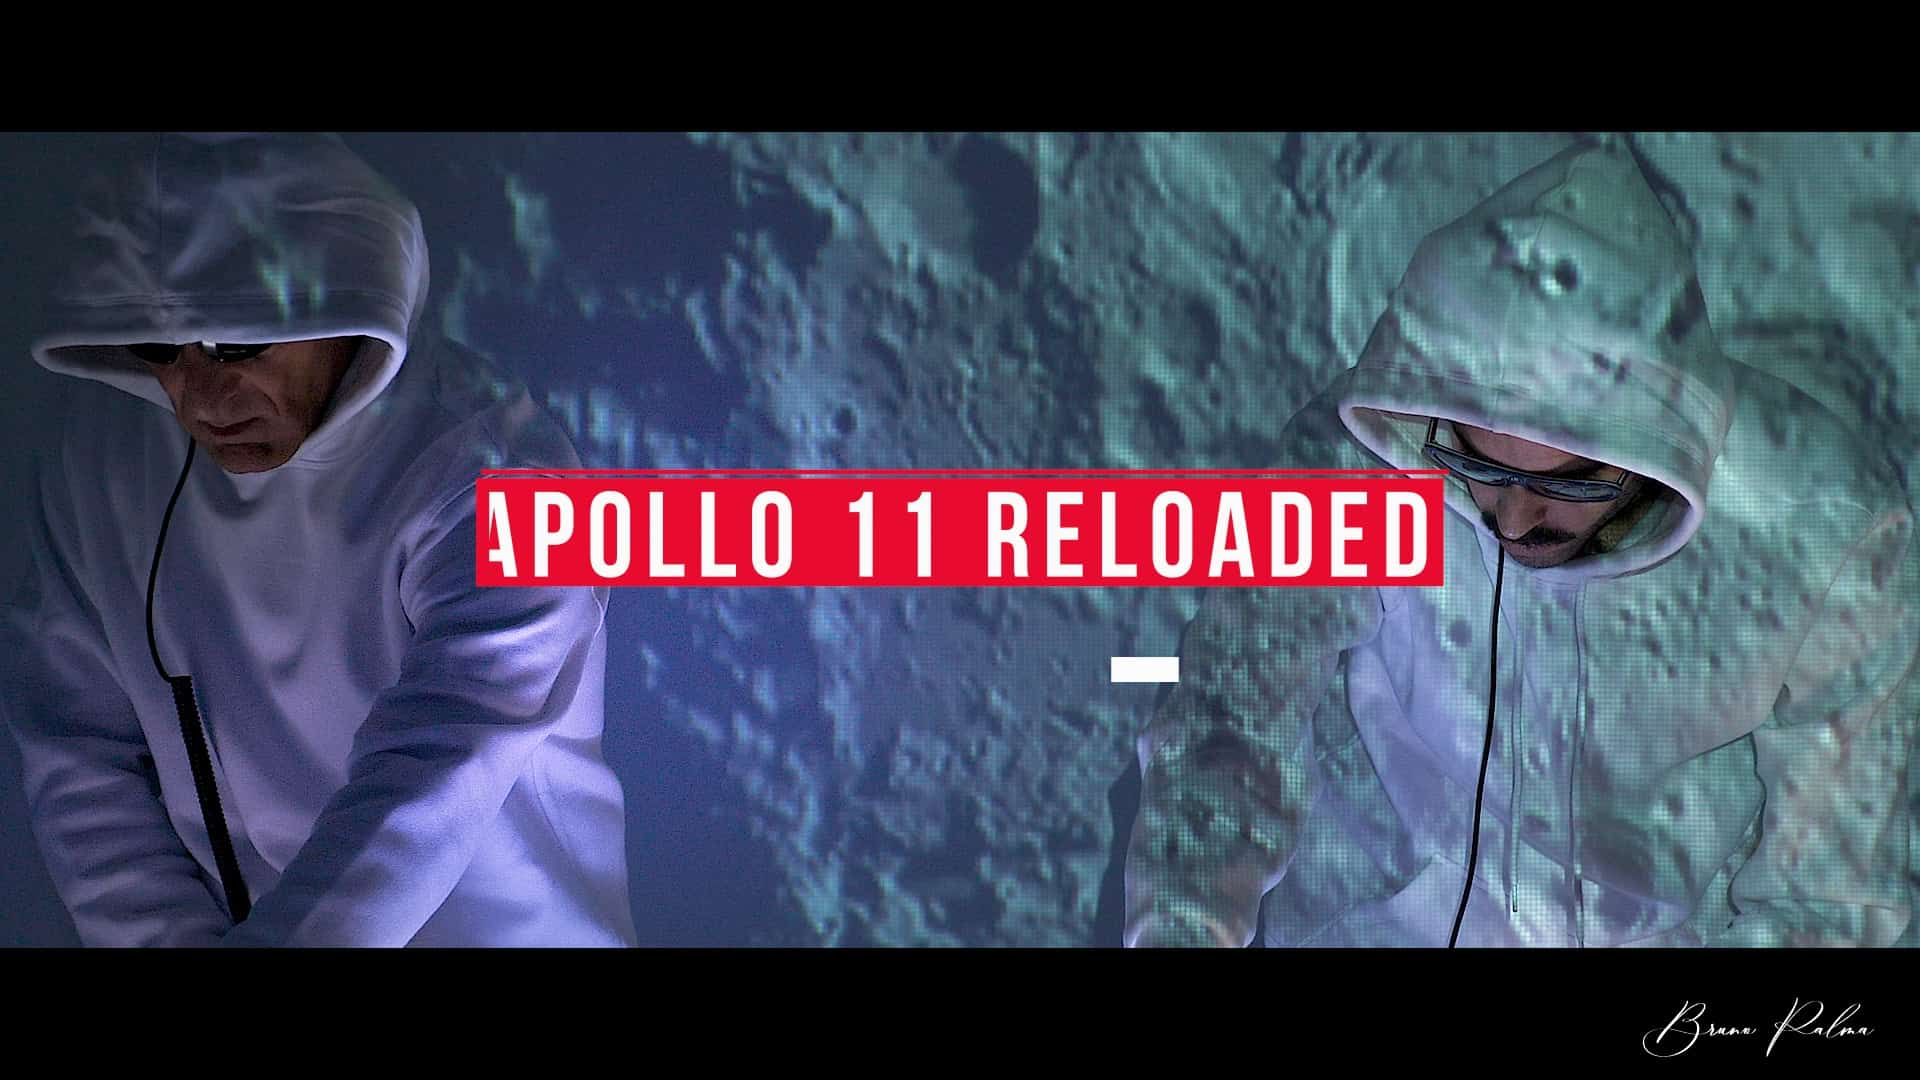 Apollo 11 Reloaded